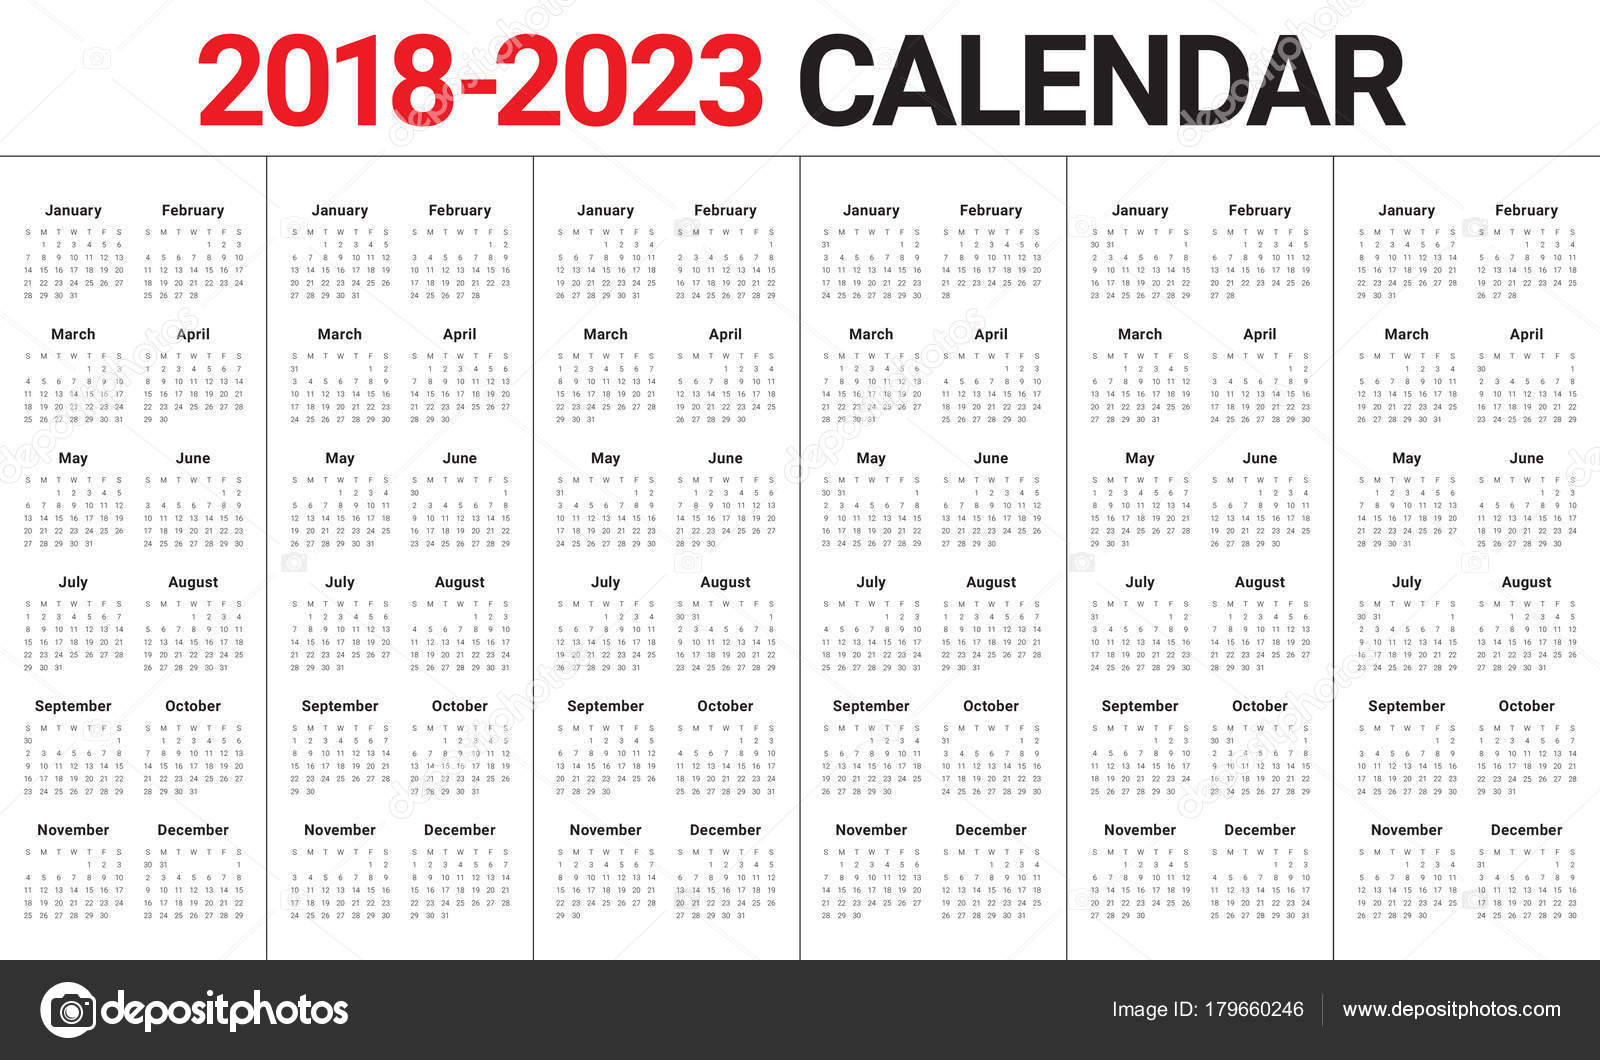 year 2018 2019 2020 2021 2022 2023 calendar vector stock vector